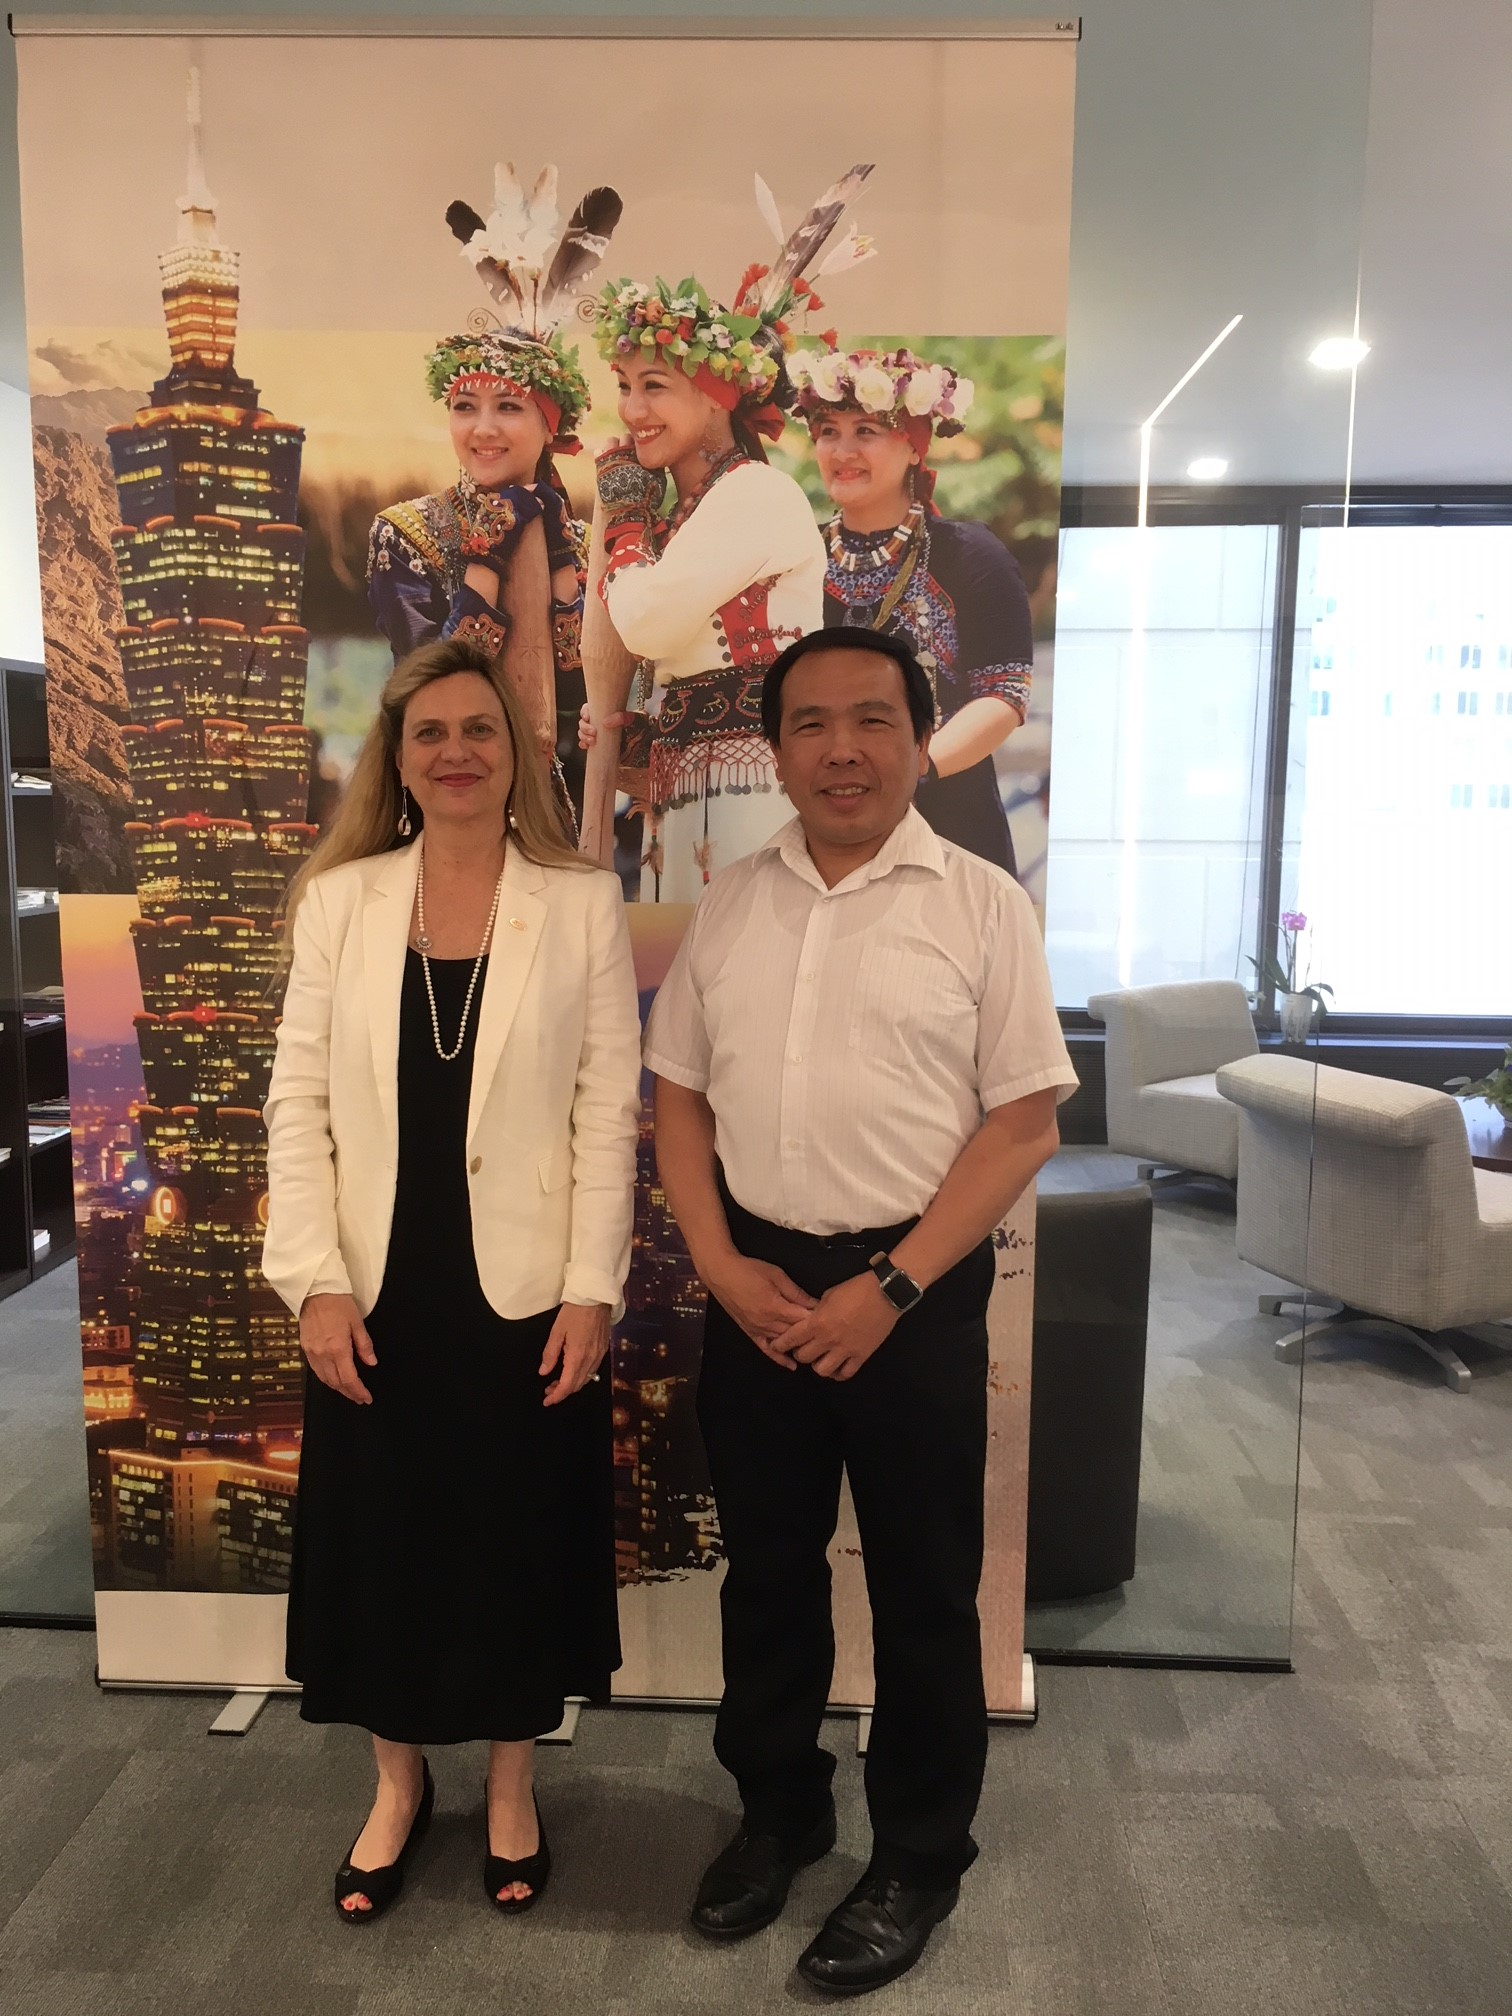 Dr. Karen Wachsmuth, Associate Director of International Fellowships at U of Iowa, visited TECO in Chicago